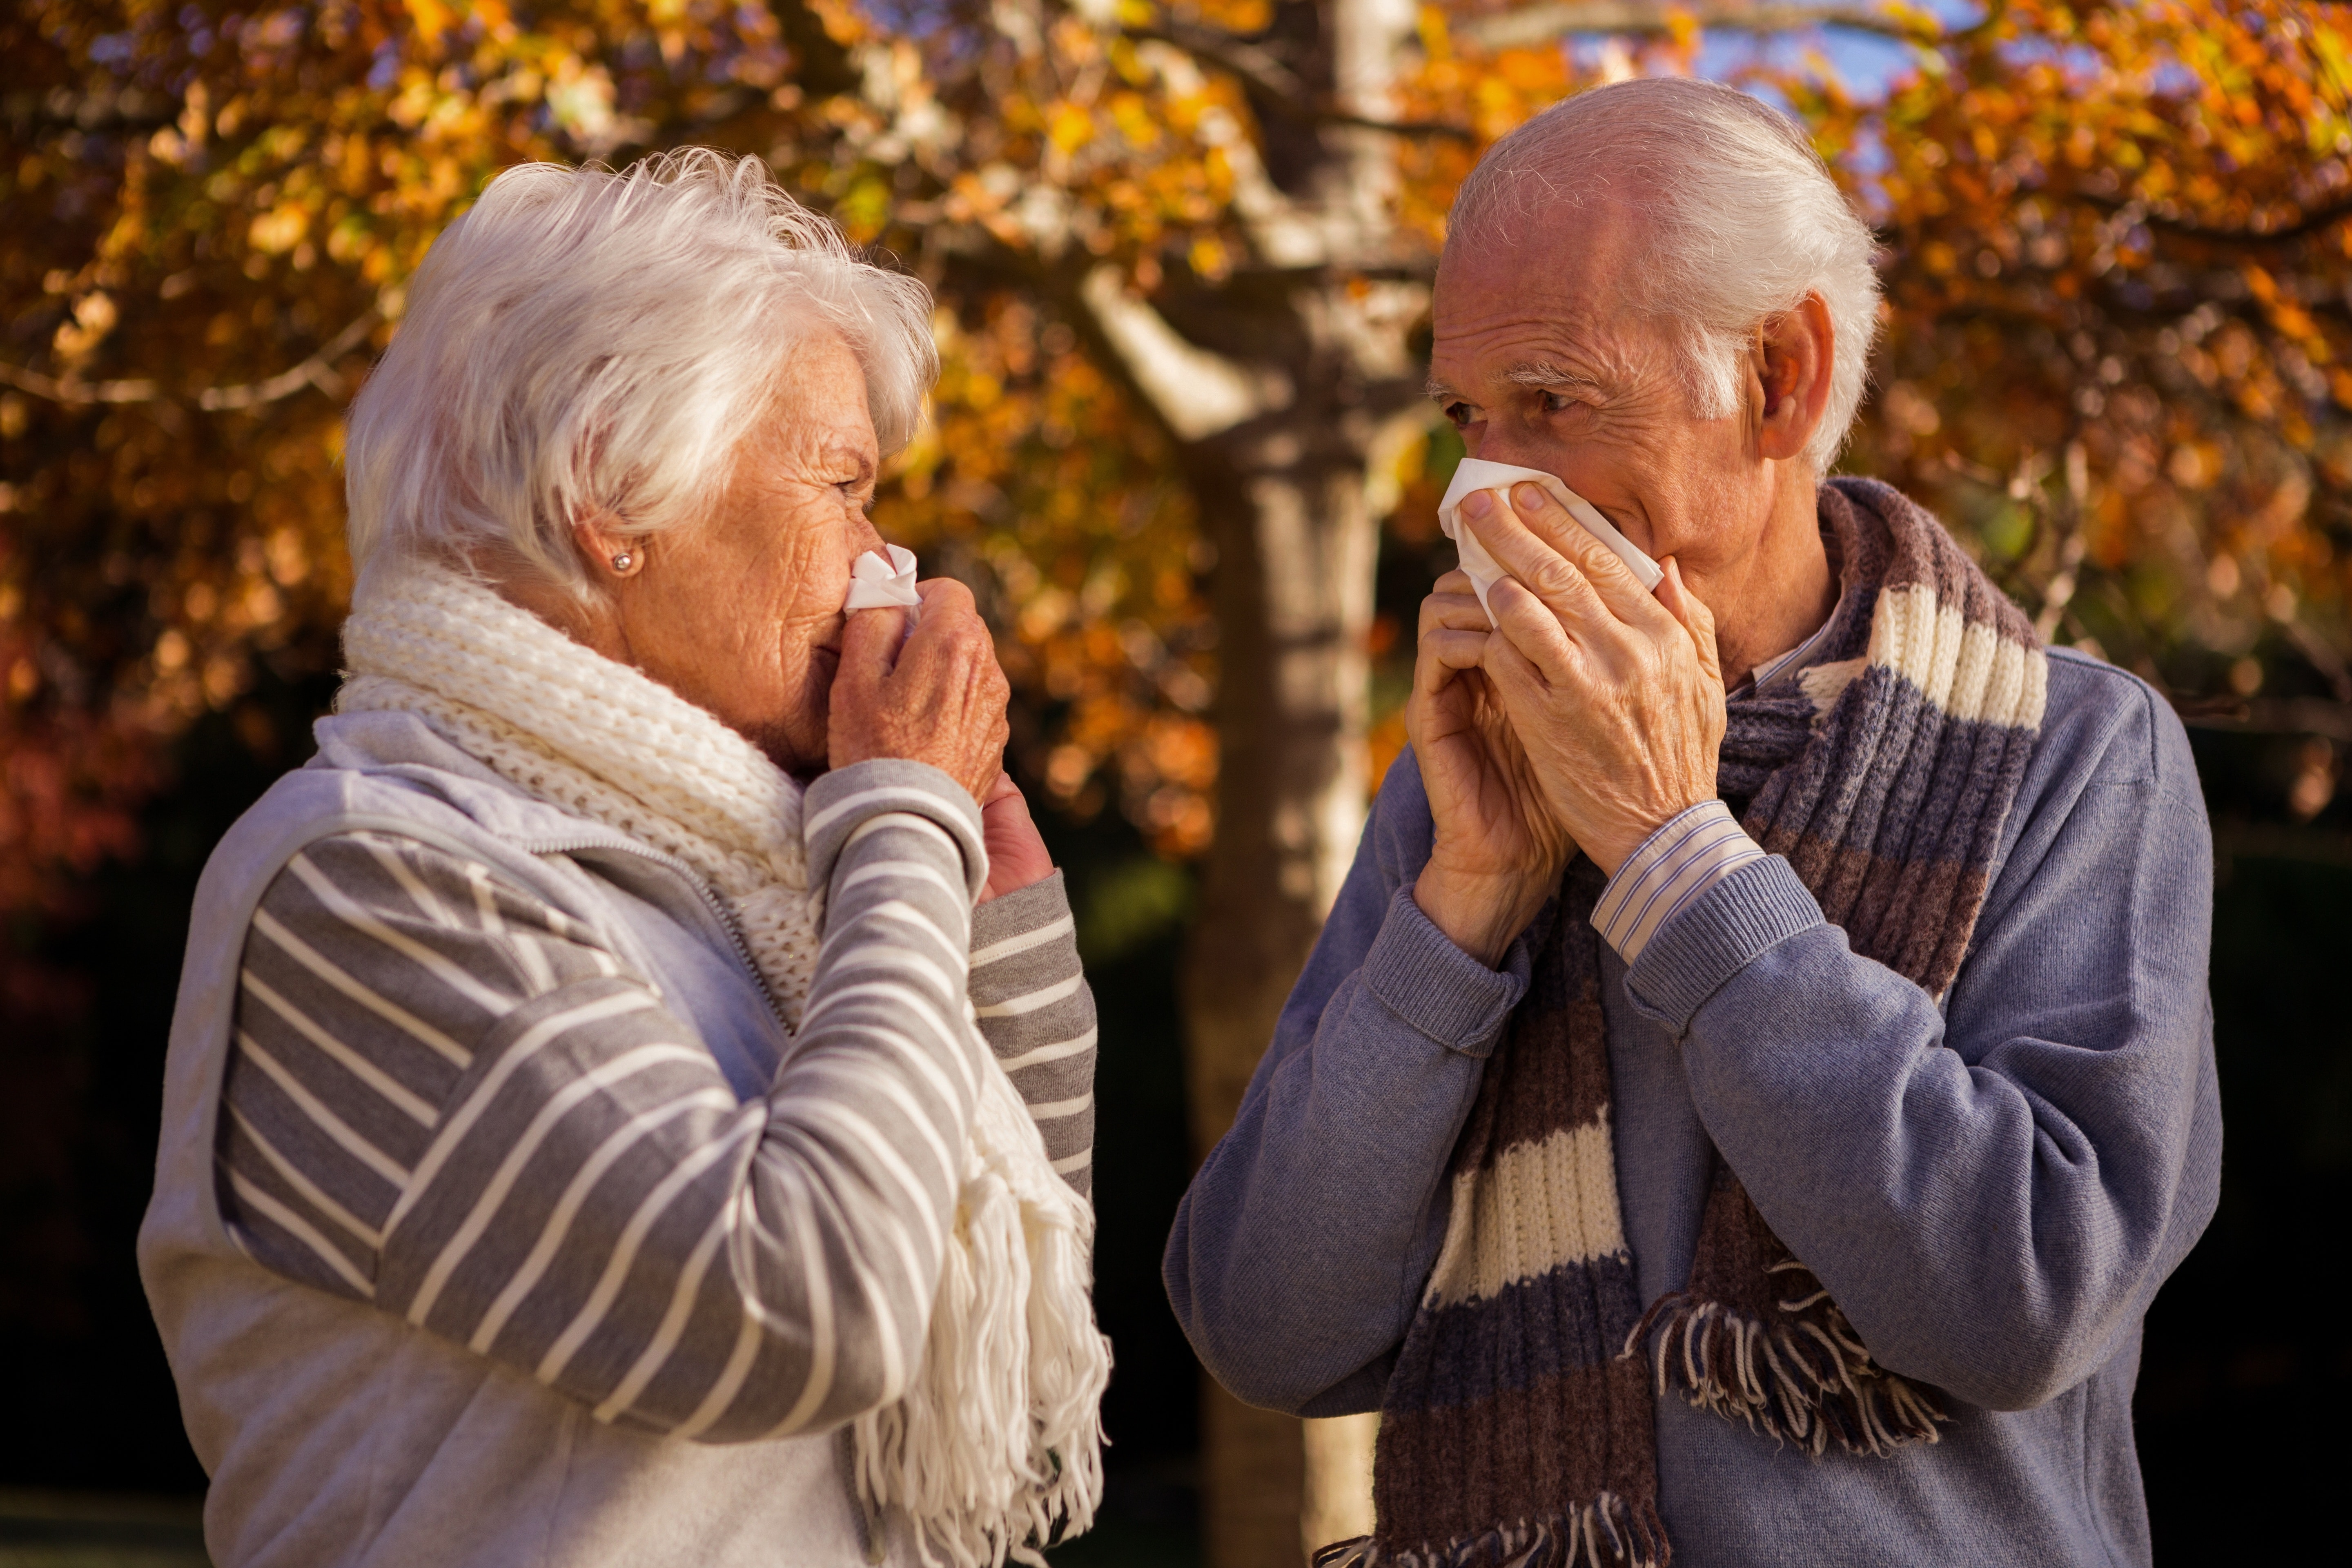 How to prevent the flu for seniors